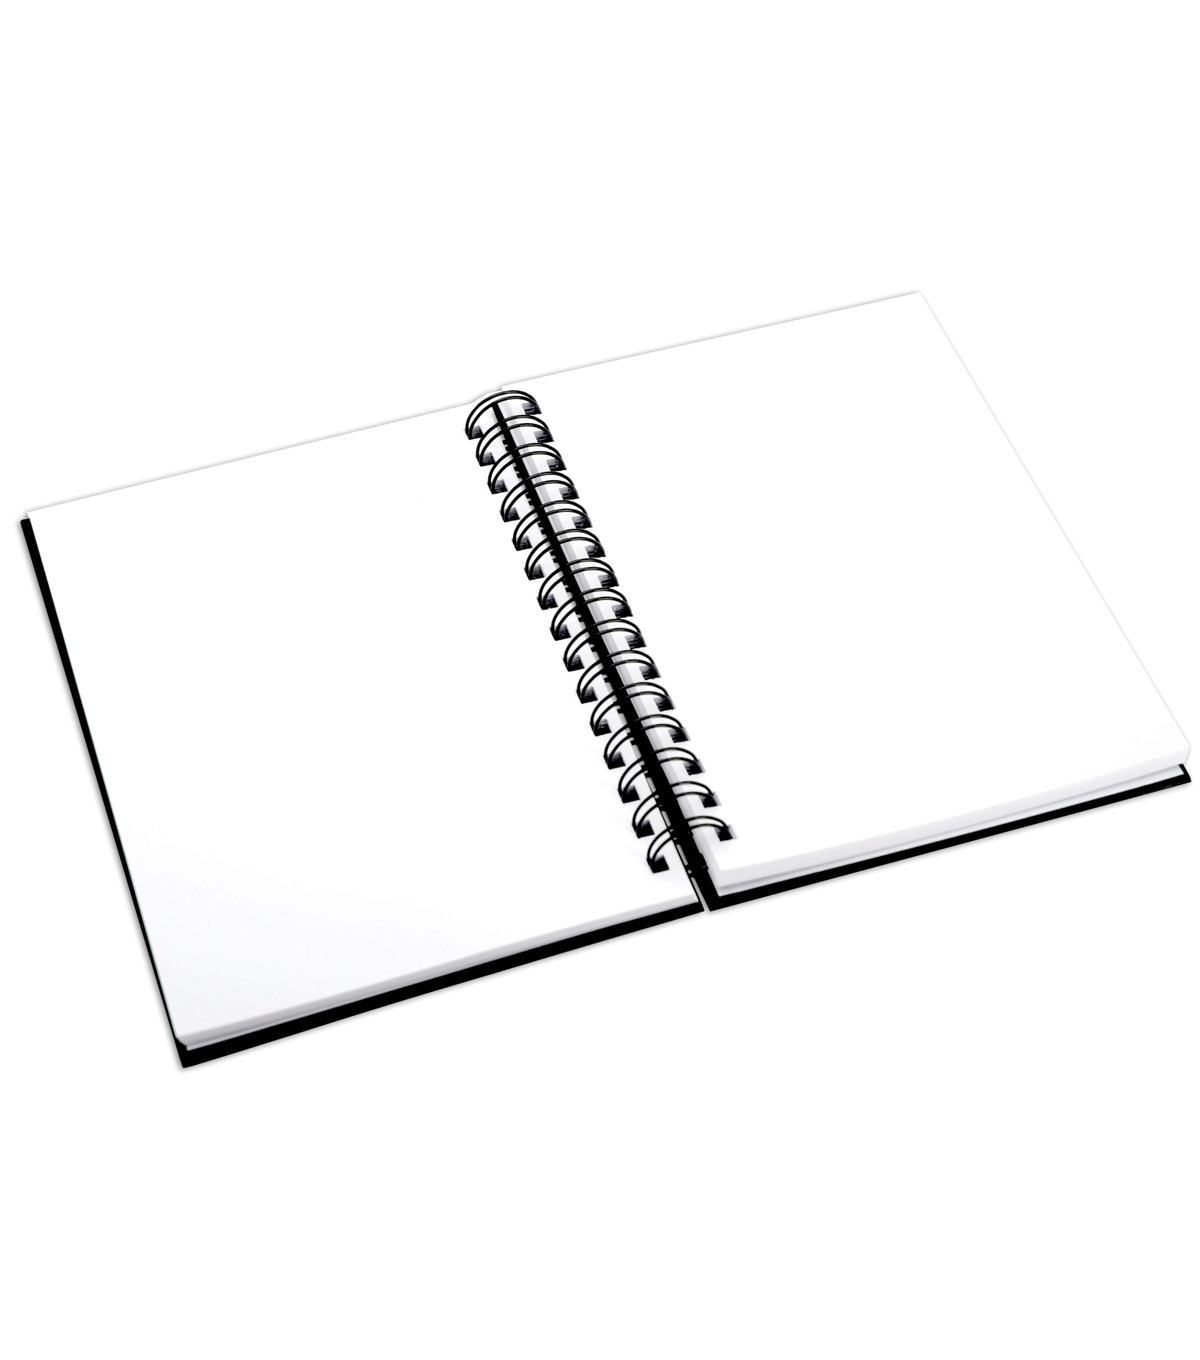 Proart 5\u0022x 8\u0022 Spiral Bound Sketch Book